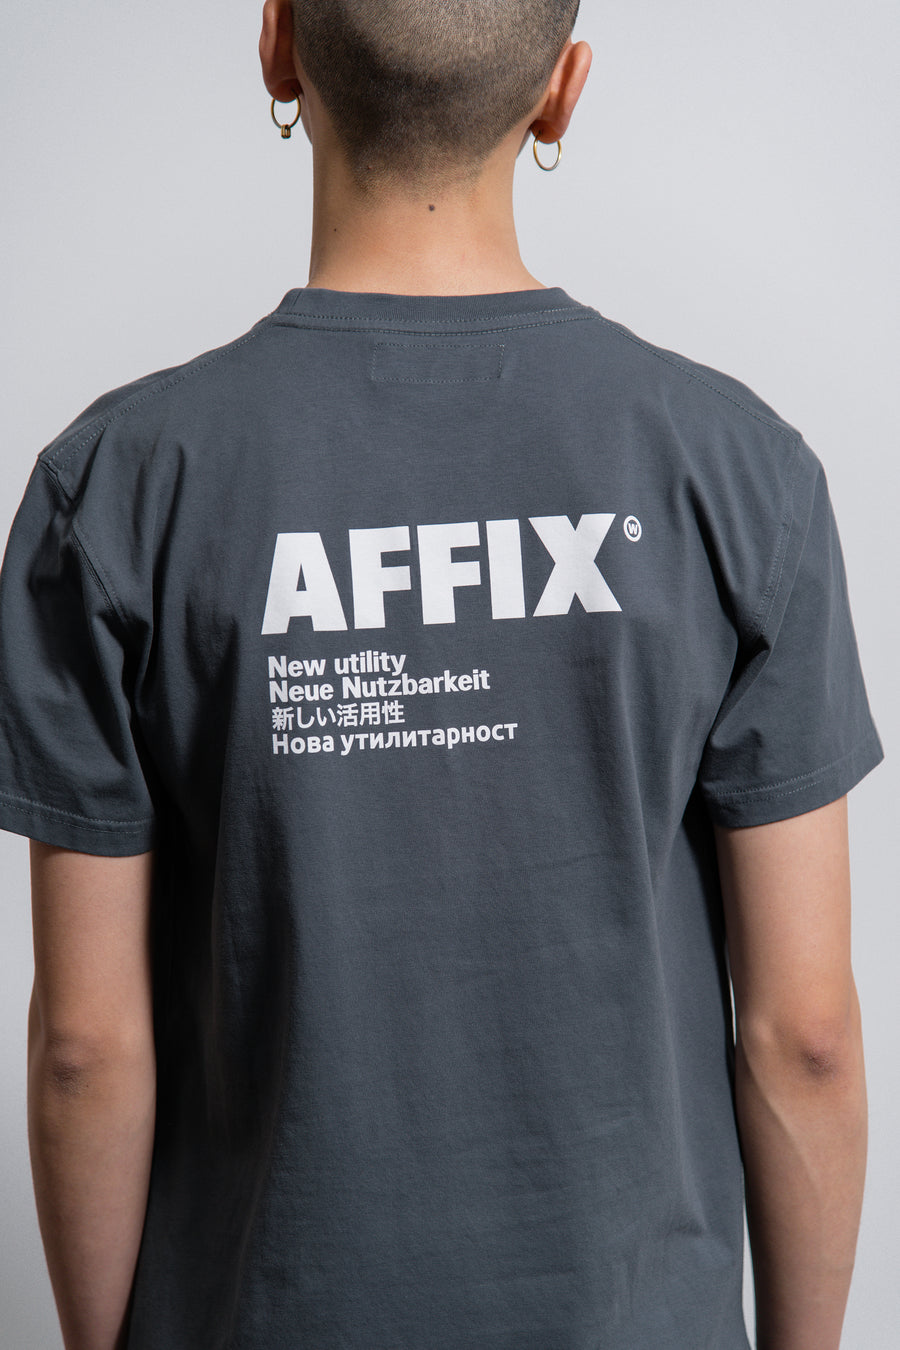 AFFIX S/S Standardise Tee Utility Grey/White